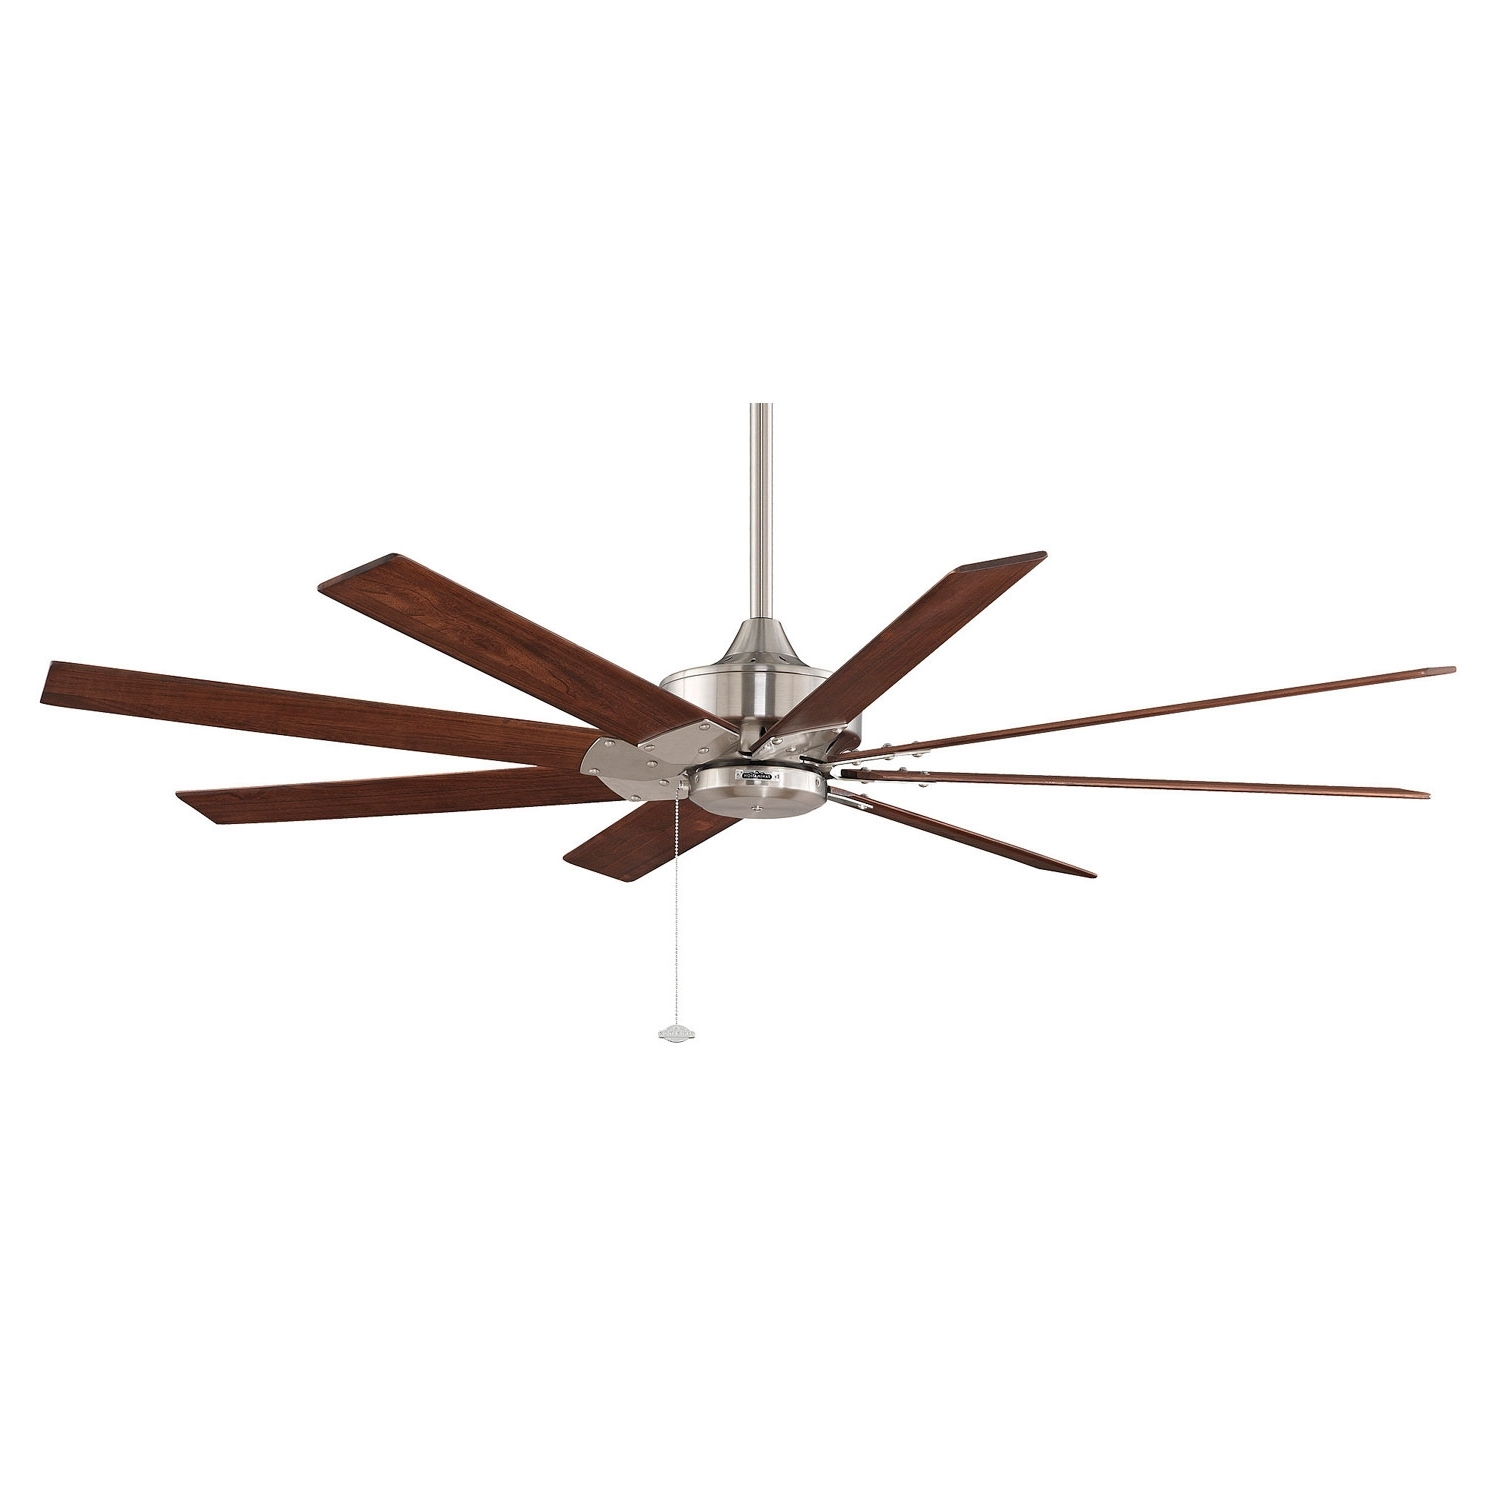 Trendy Fanimation Levon Brushed Nickel 63 Inch Energy Star Ceiling Fan With Inside Brushed Nickel Outdoor Ceiling Fans (View 17 of 20)